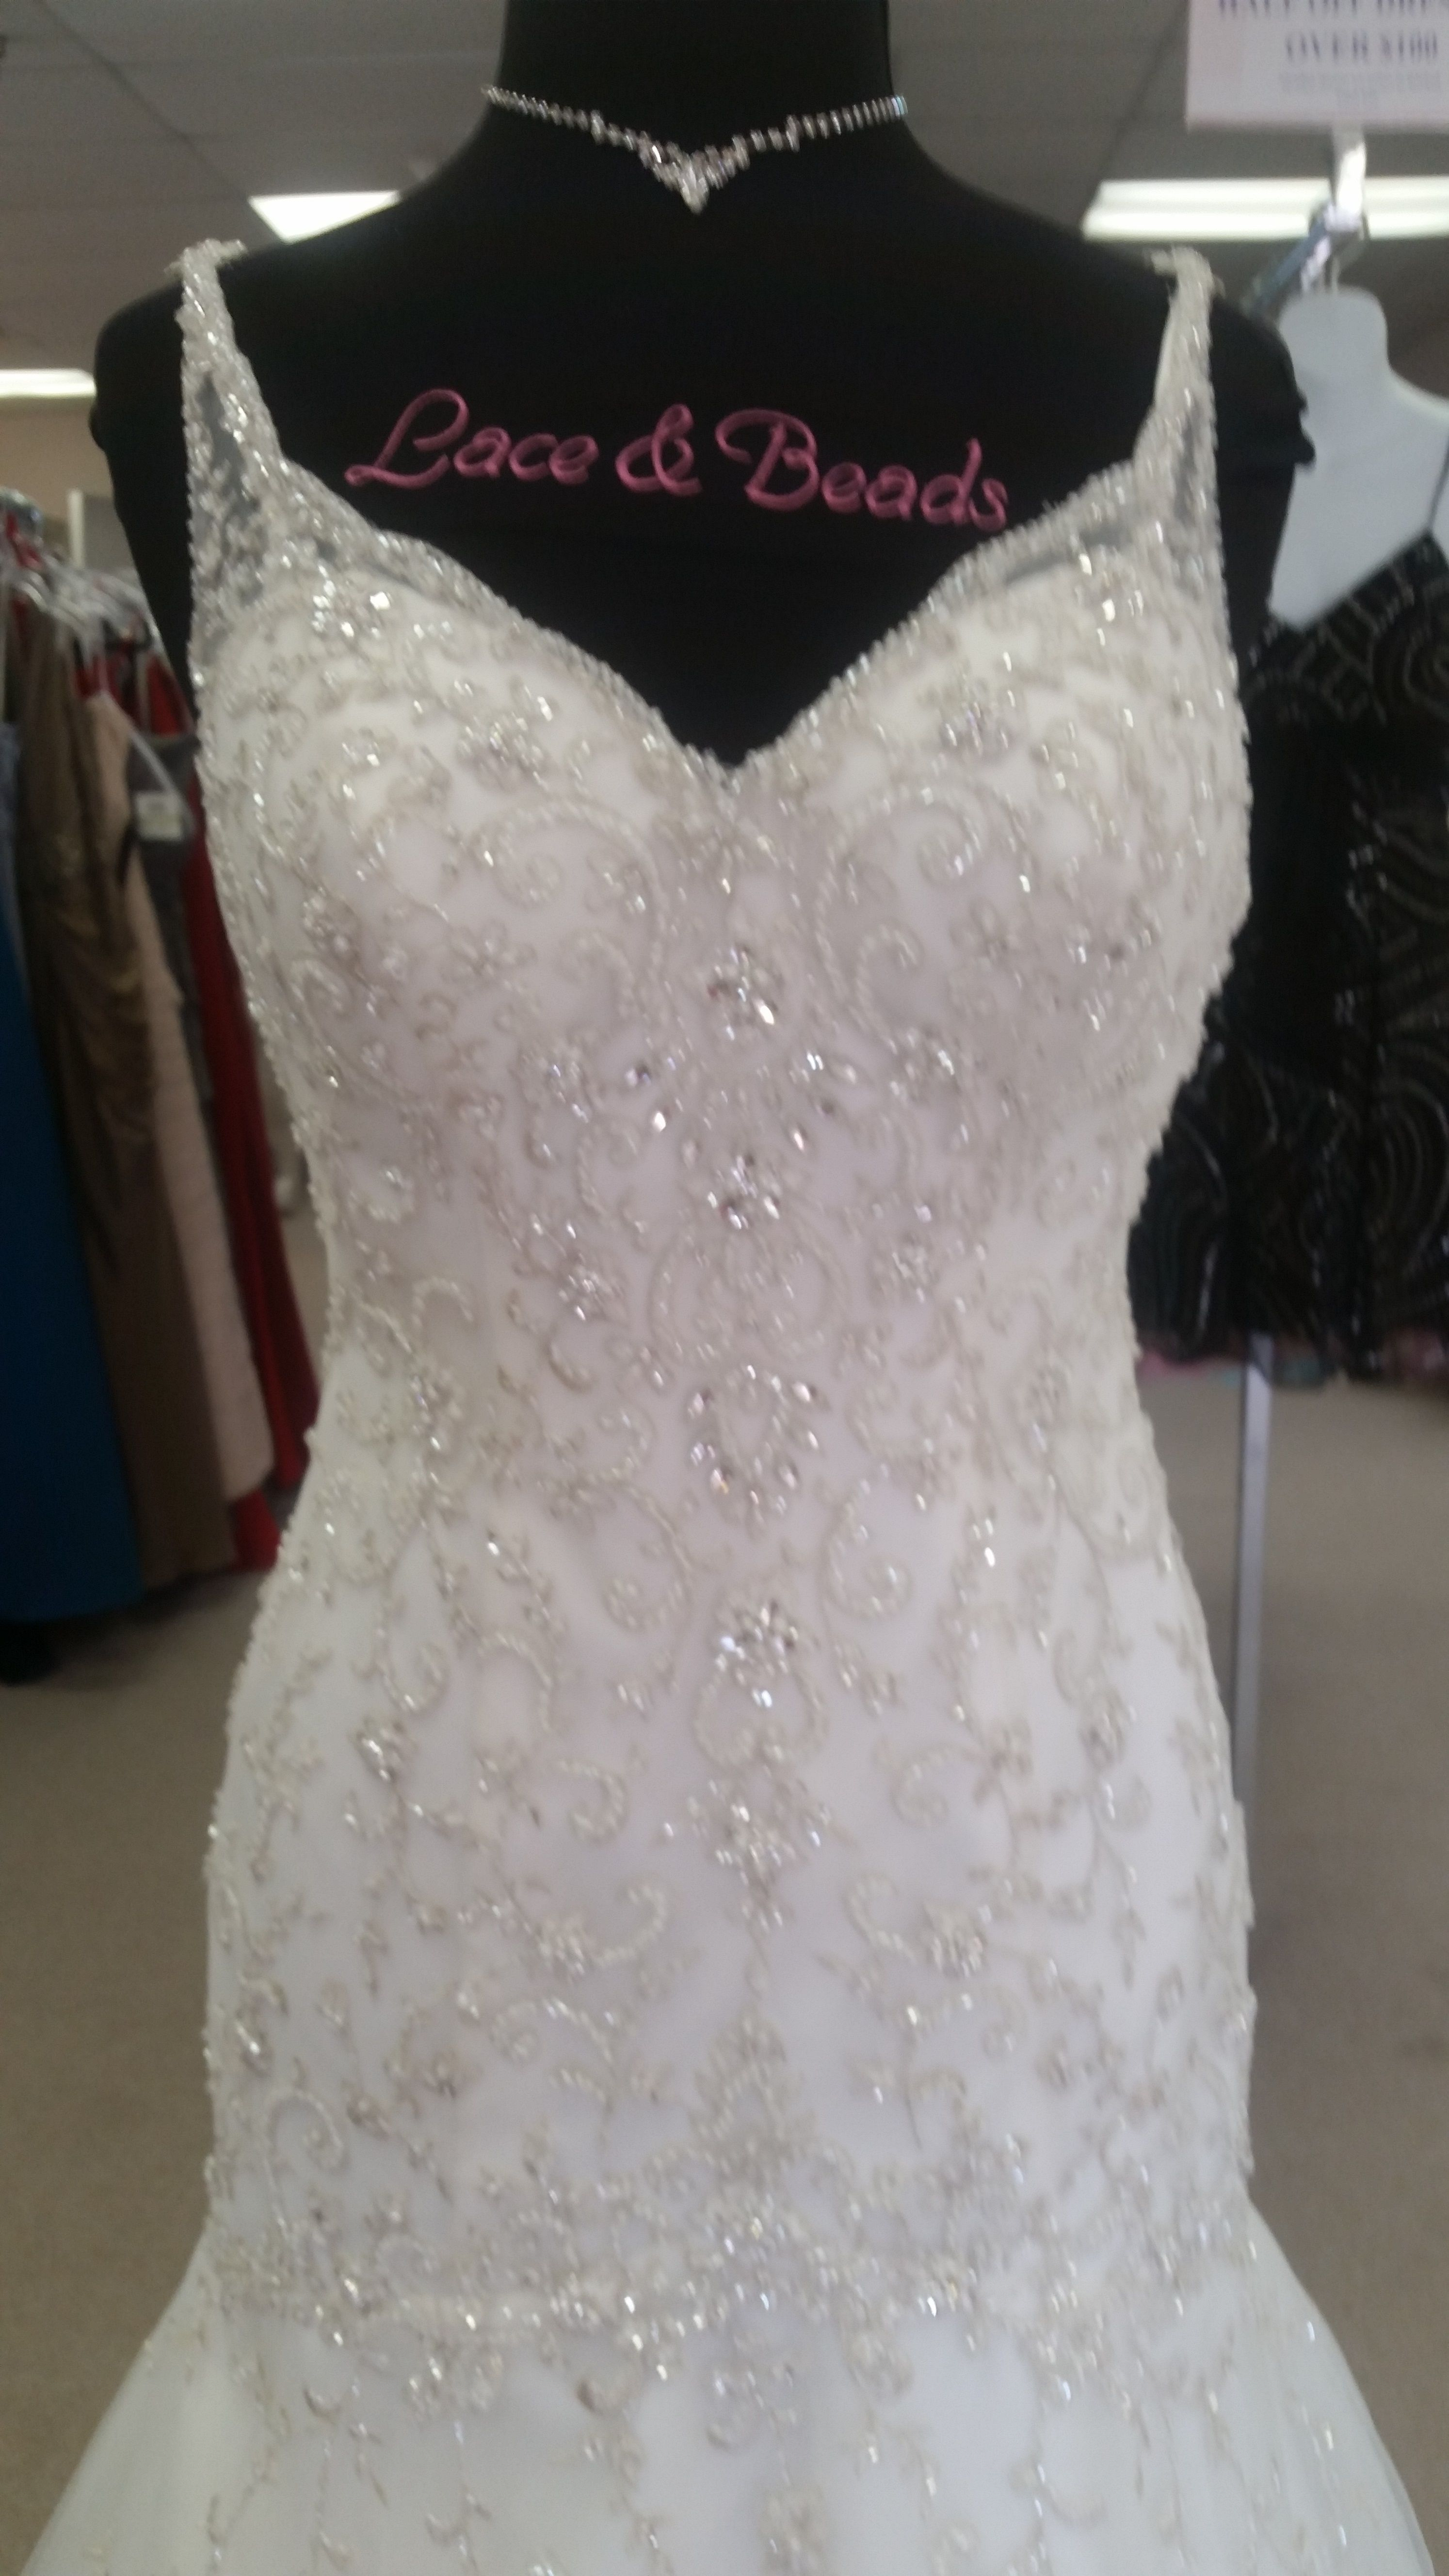 Our new arrival!  The back is as stunning as the front!